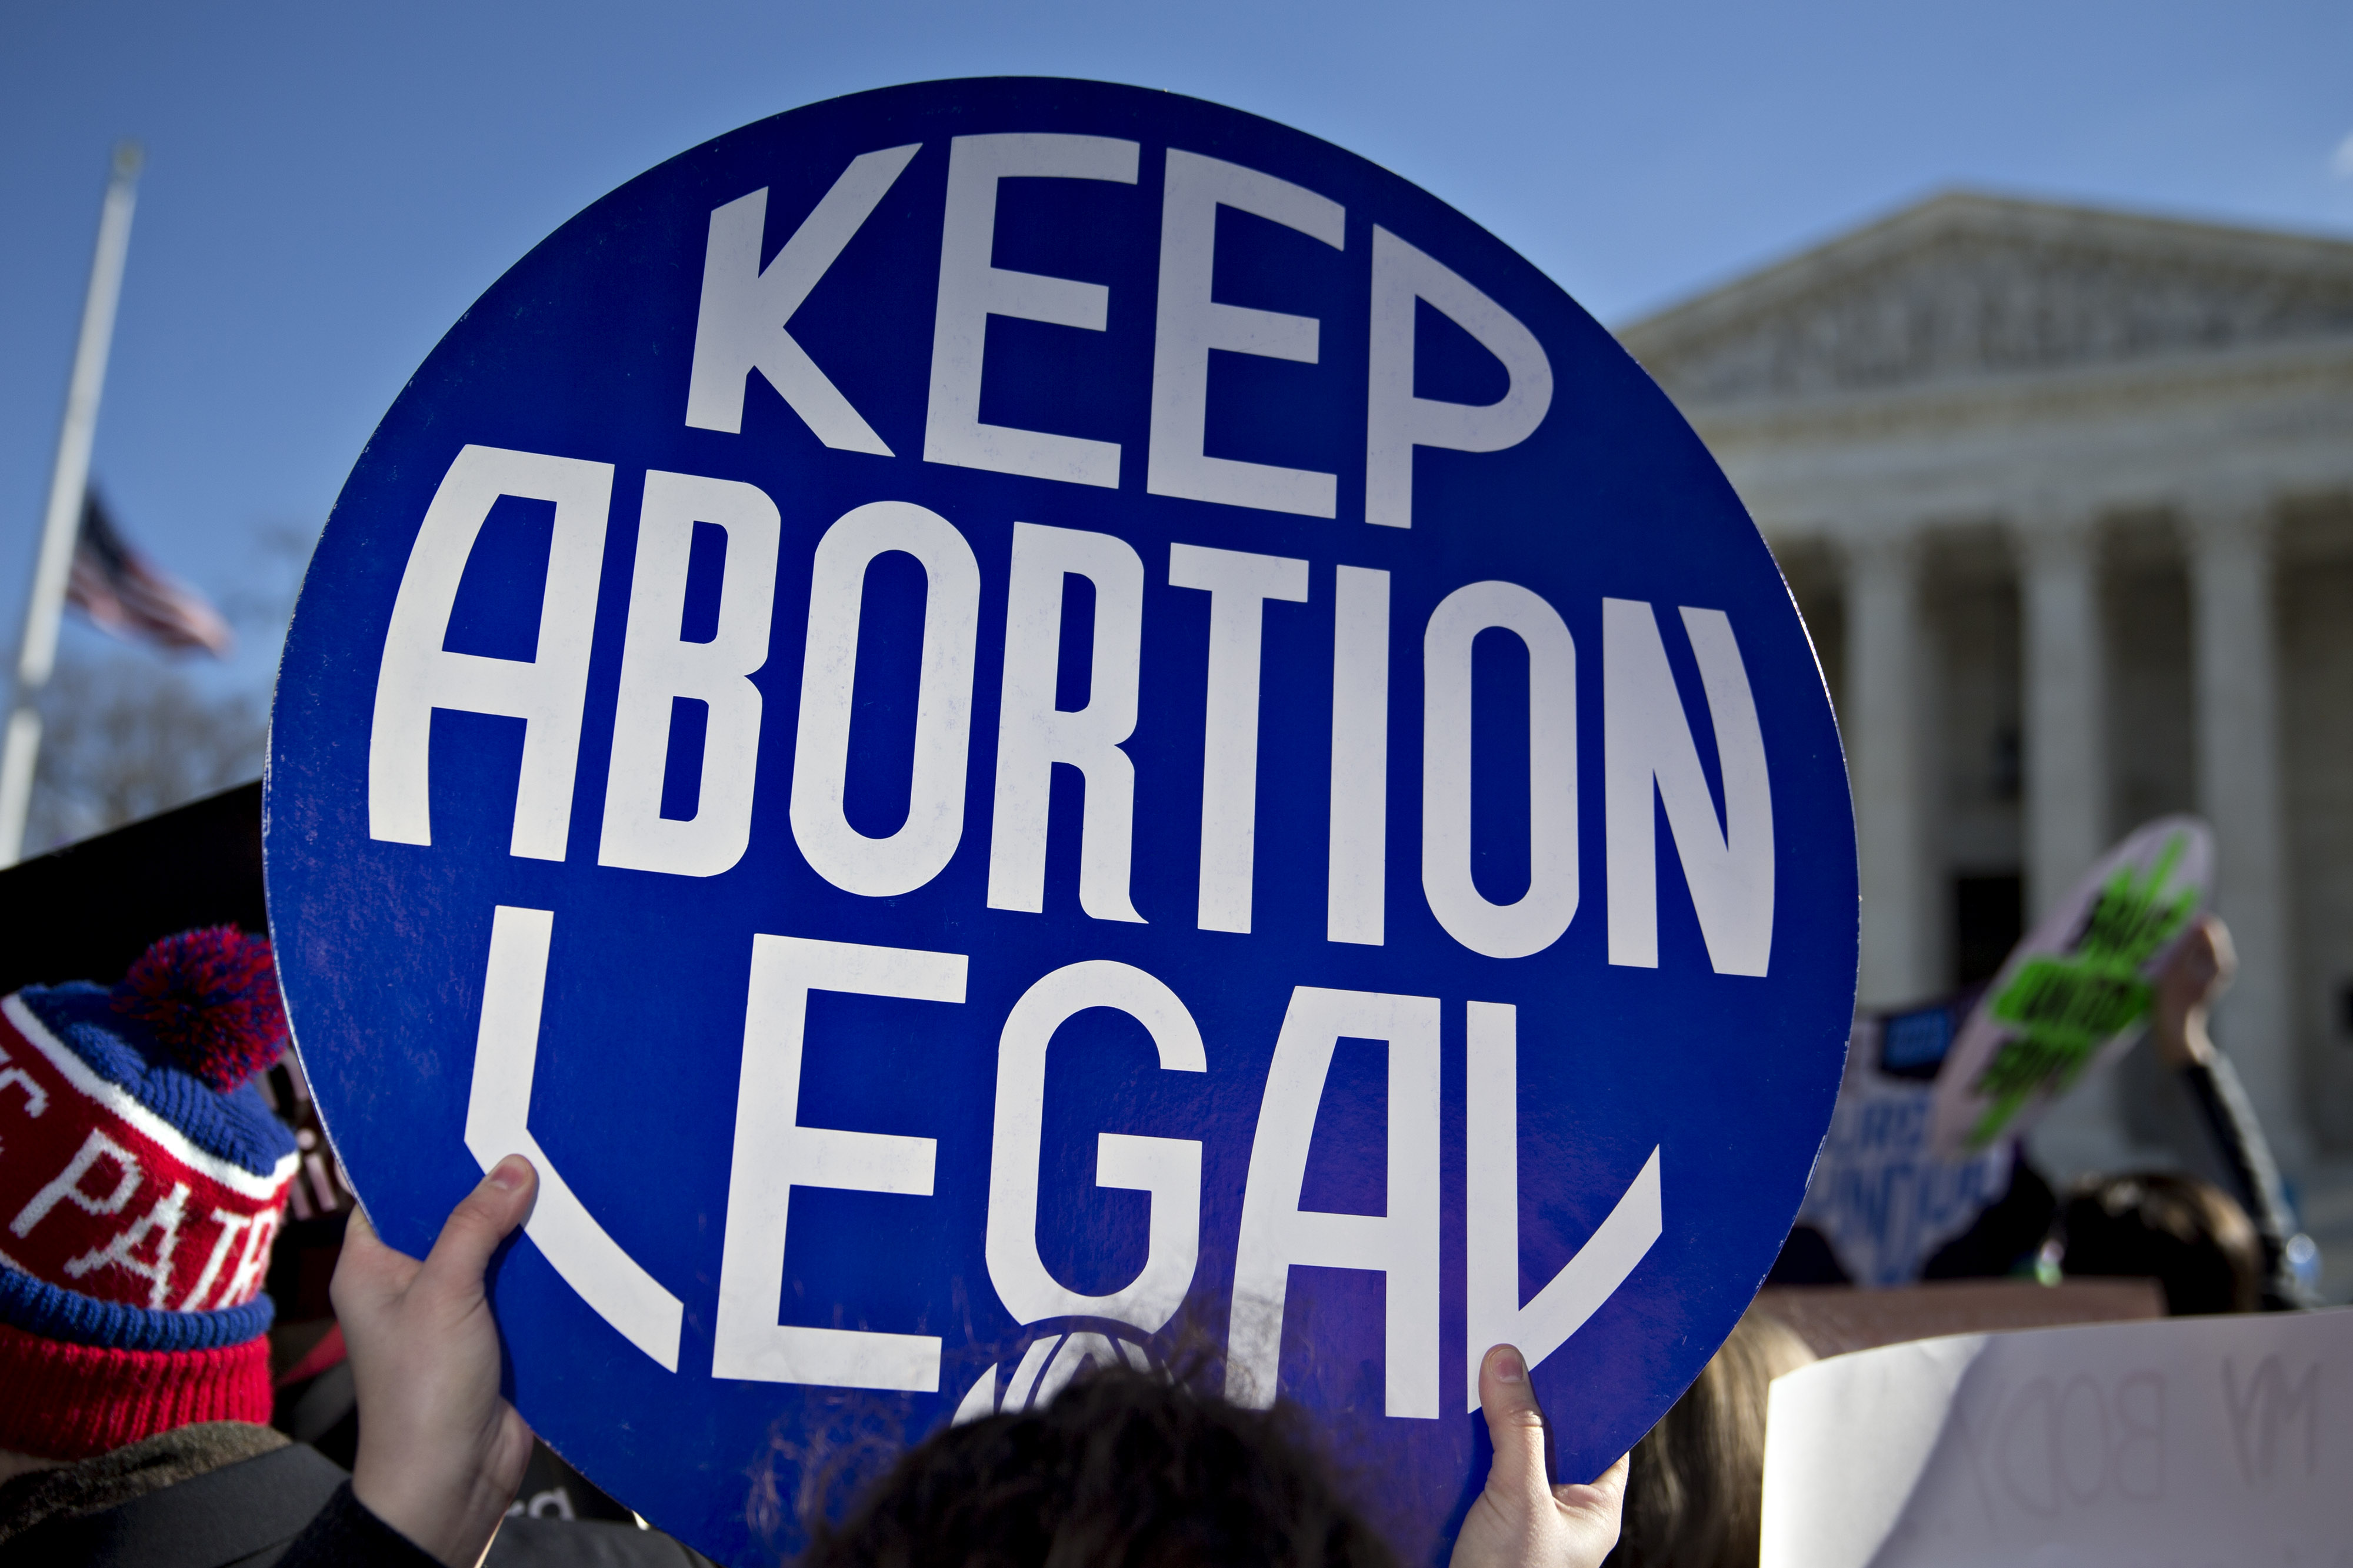 A demonstrator holds up a sign in support of abortion rights outside the U.S. Supreme Court in Washington, D.C., U.S., on Wednesday, March 2, 2016. Supreme Court justices clashed in their first abortion showdown in almost a decade as a pivotal justice suggested the court could stop short of a definitive ruling on a disputed Texas law regulating clinics. Photographer: Andrew Harrer/Bloomberg via Getty Images